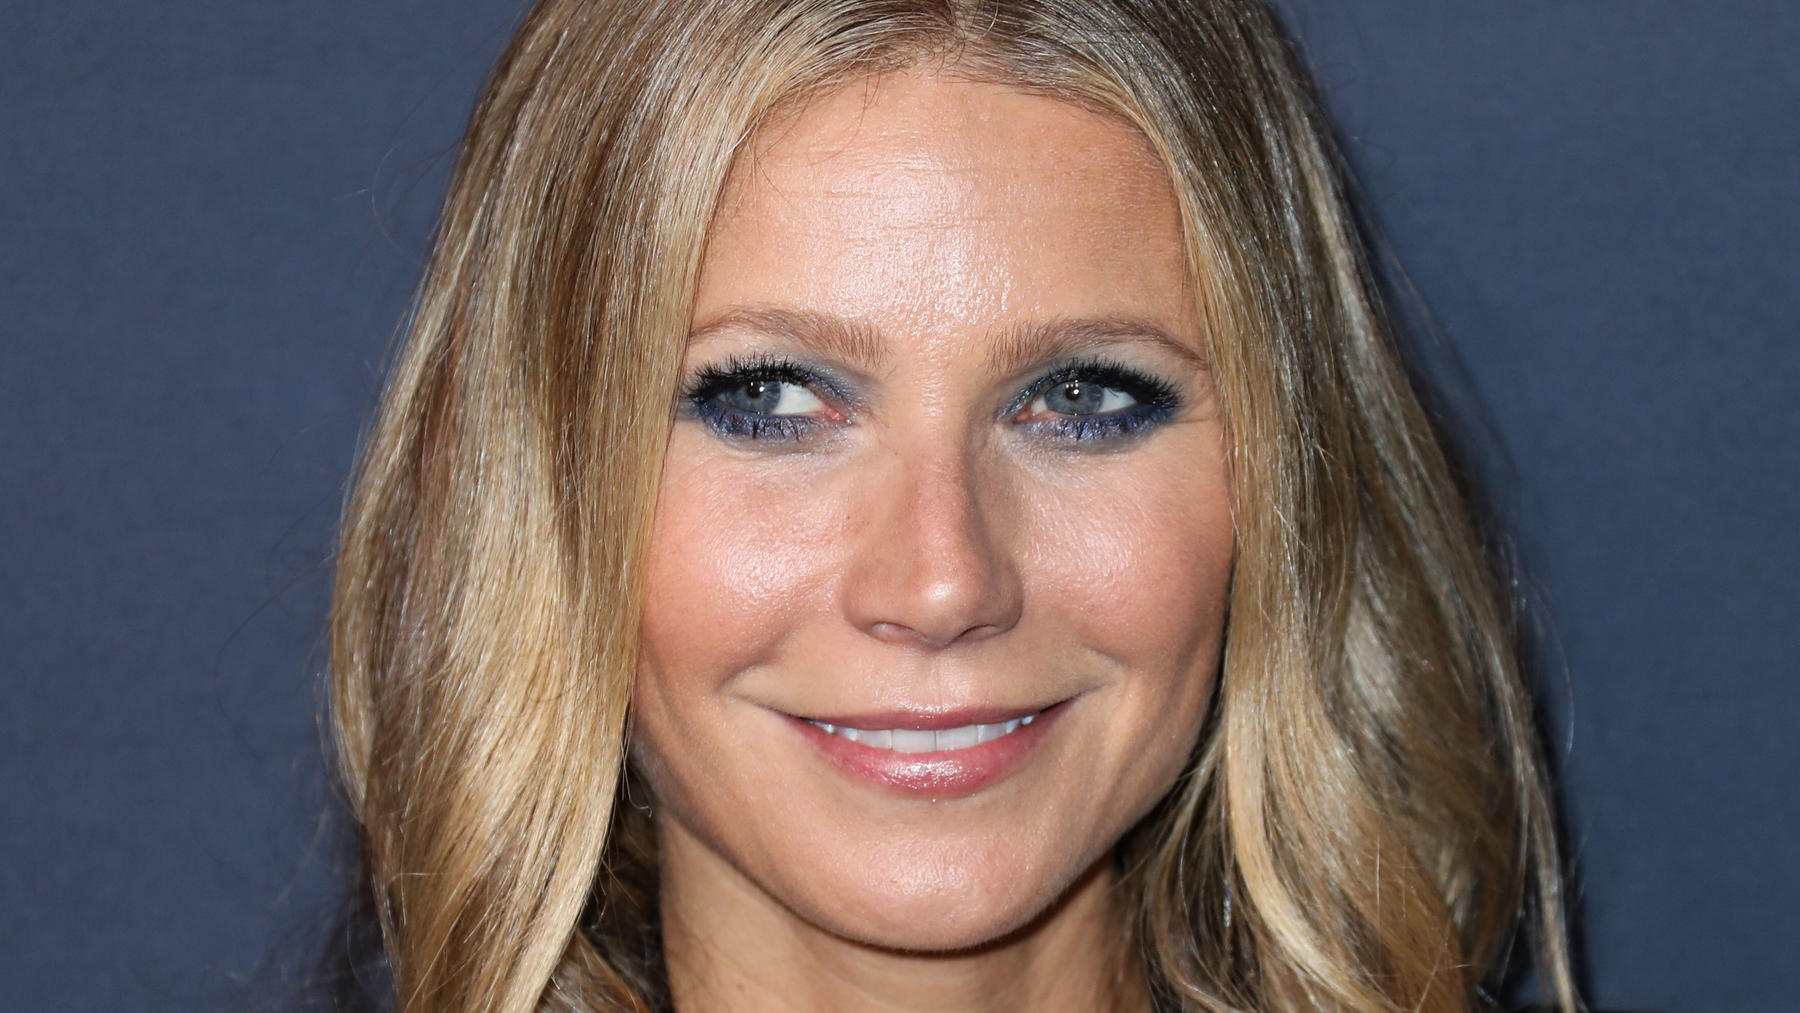 CULVER CITY, LOS ANGELES, CA, USA - NOVEMBER 11: Actress Gwyneth Paltrow wearing Tom Ford with Irene Neuwirth jewelry arrives at the 2017 Baby2Baby Gala held at 3LABS on November 11, 2017 in Culver City, Los Angeles, California, United States. (Photo